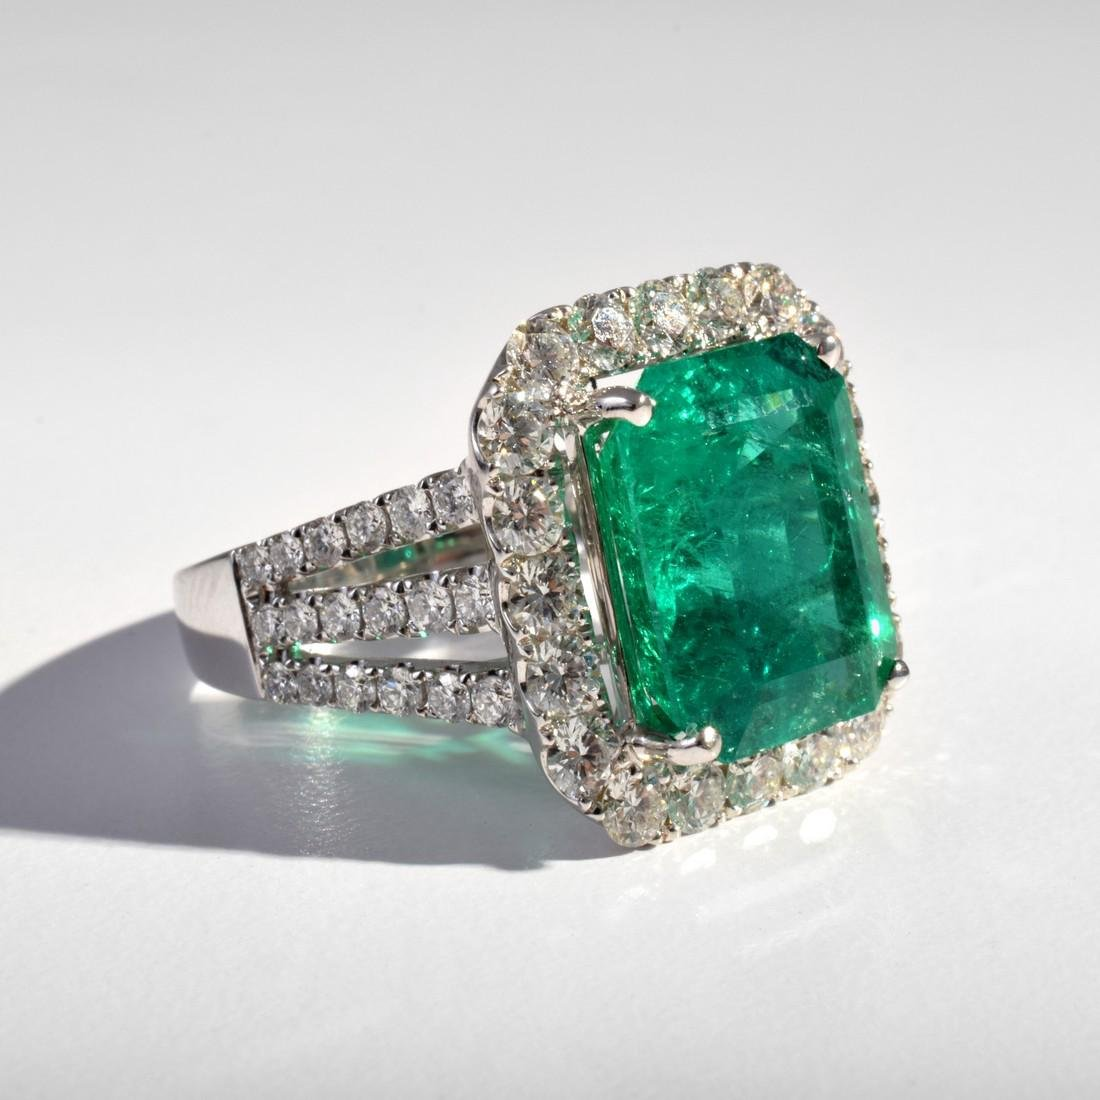 18k White Gold, Diamond & Emerald Estate Ring